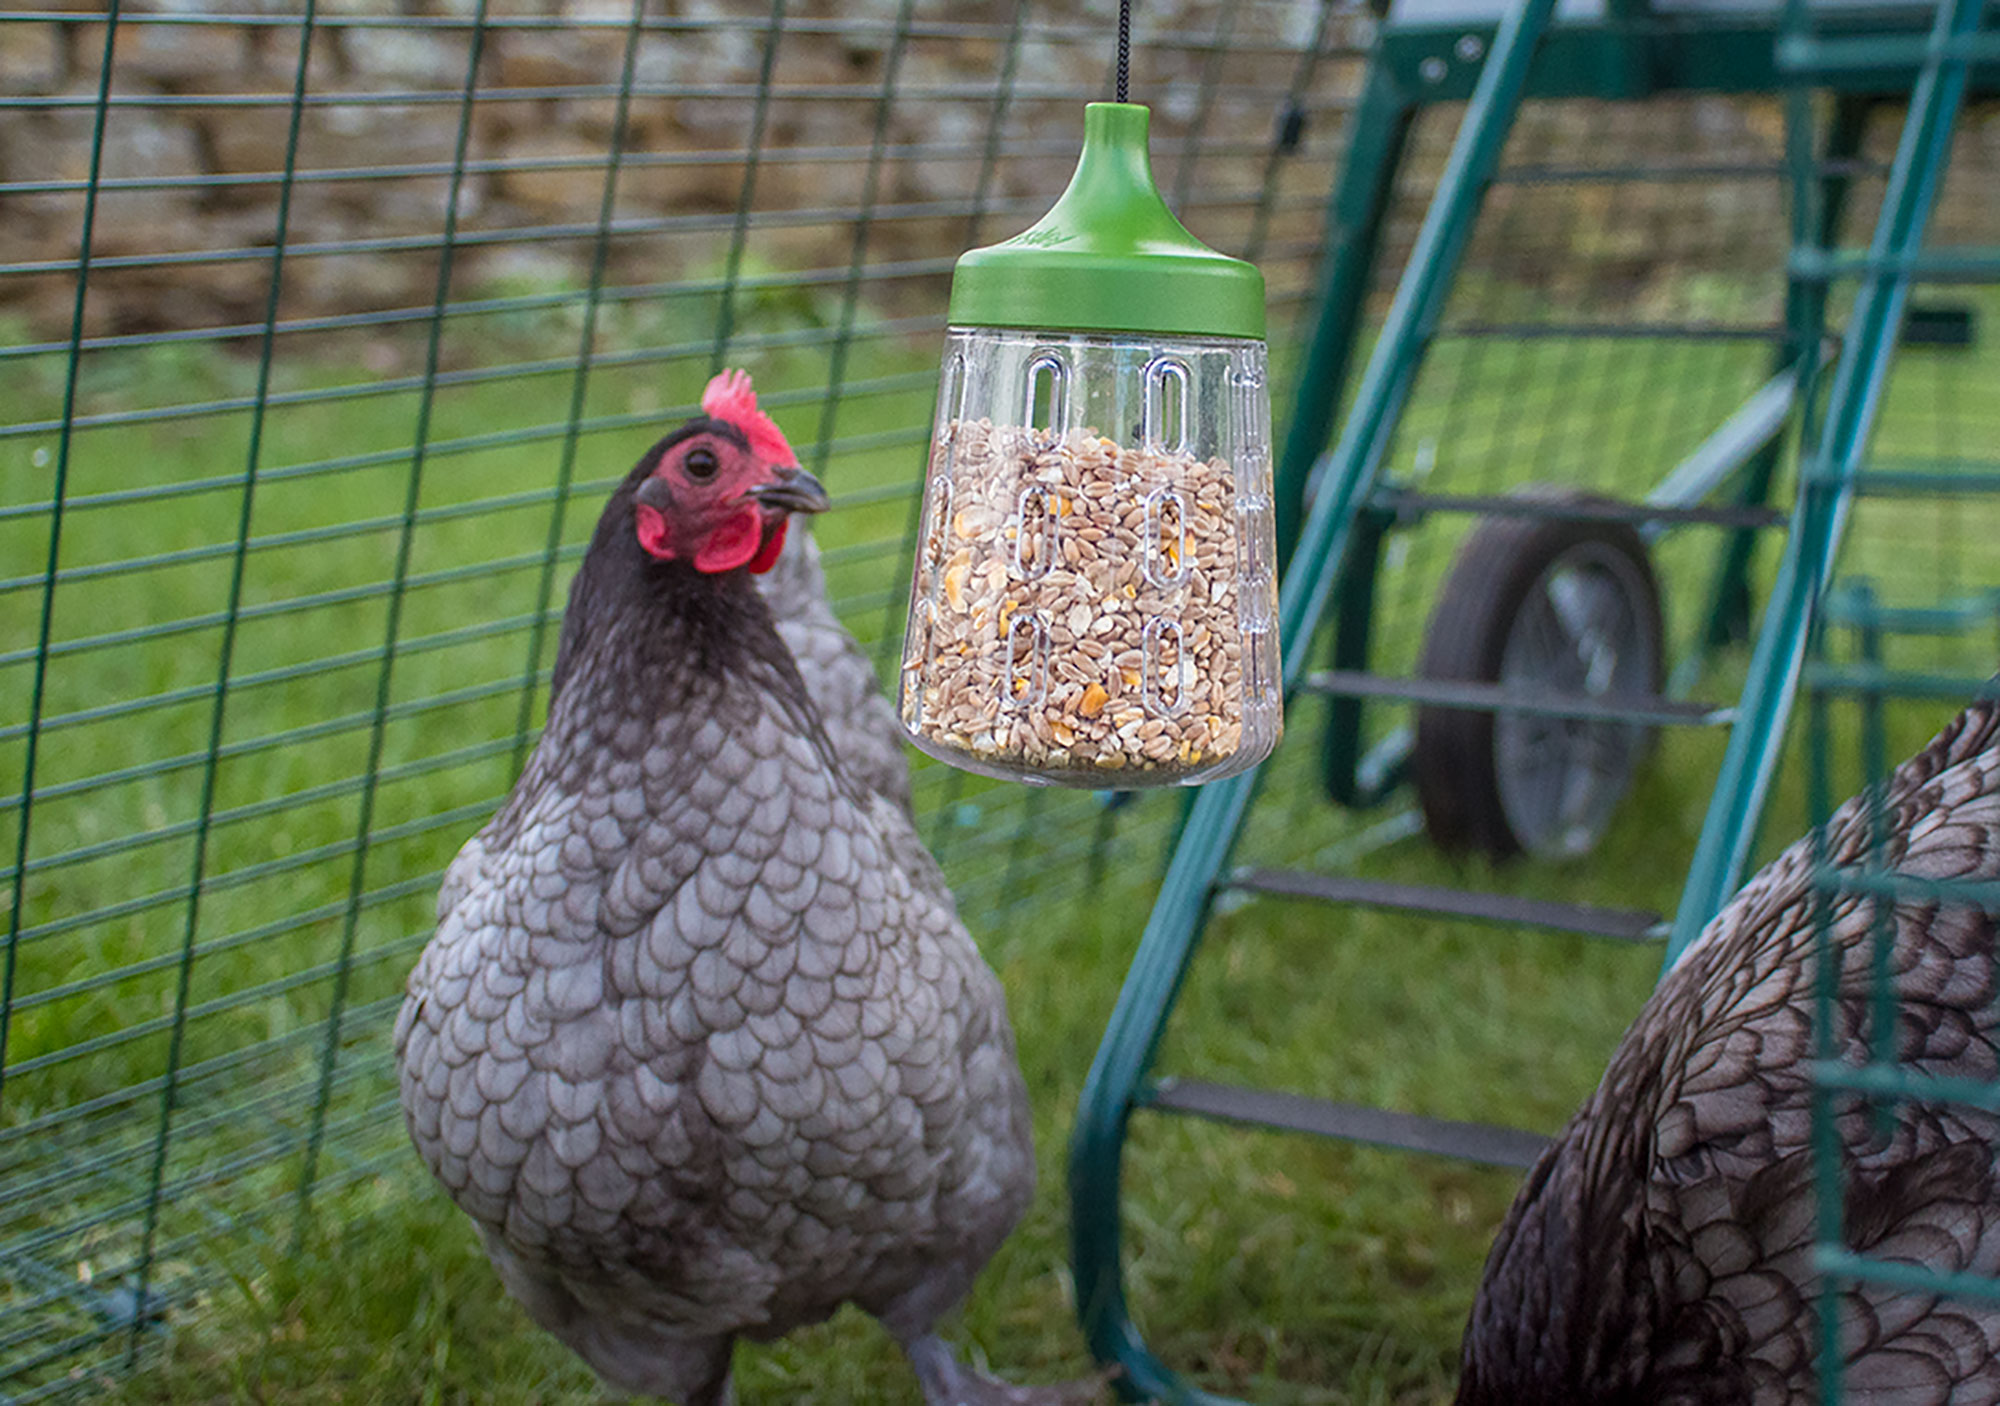 Chickens enjoy using their Elvis Peck Toy